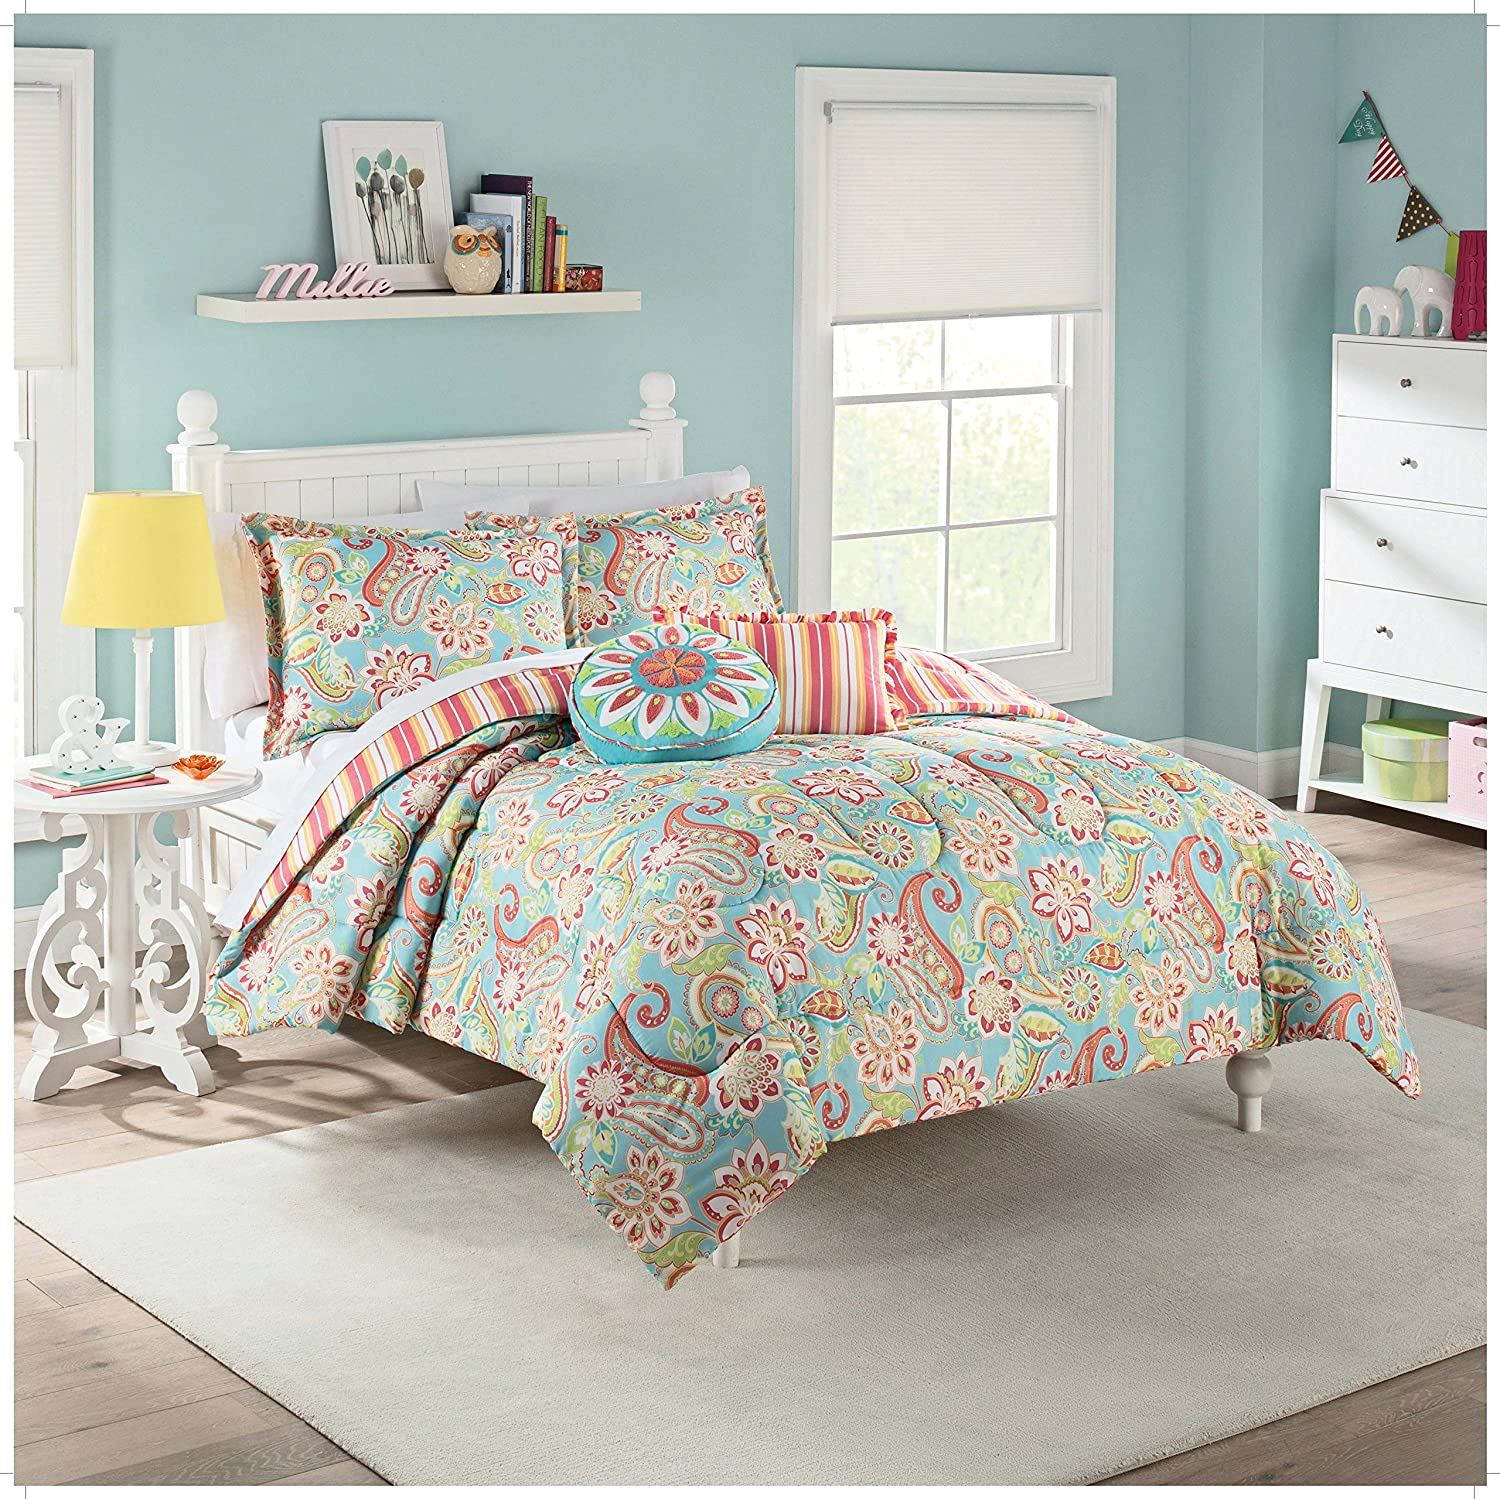 WAVERLY Kids Wild Card Reversible Bedding Collection, Full/Queen, Multicolor